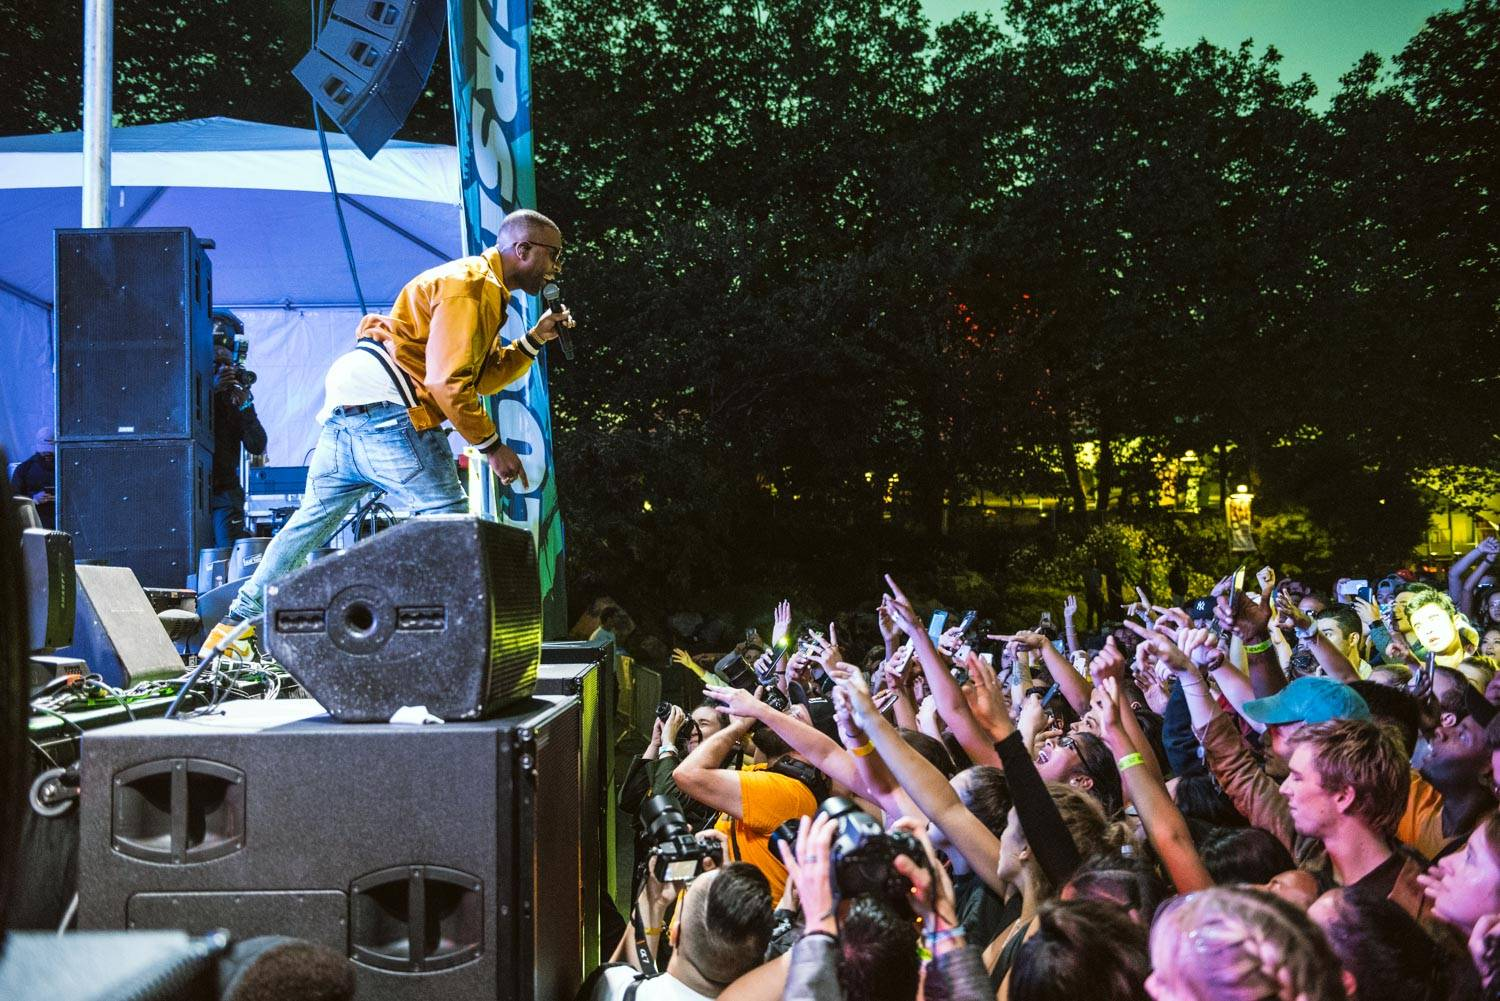 dvsn at the Bumbershoot Music Festival 2018 - Day 2. Sept 1 2018. Pavel Boiko photo.